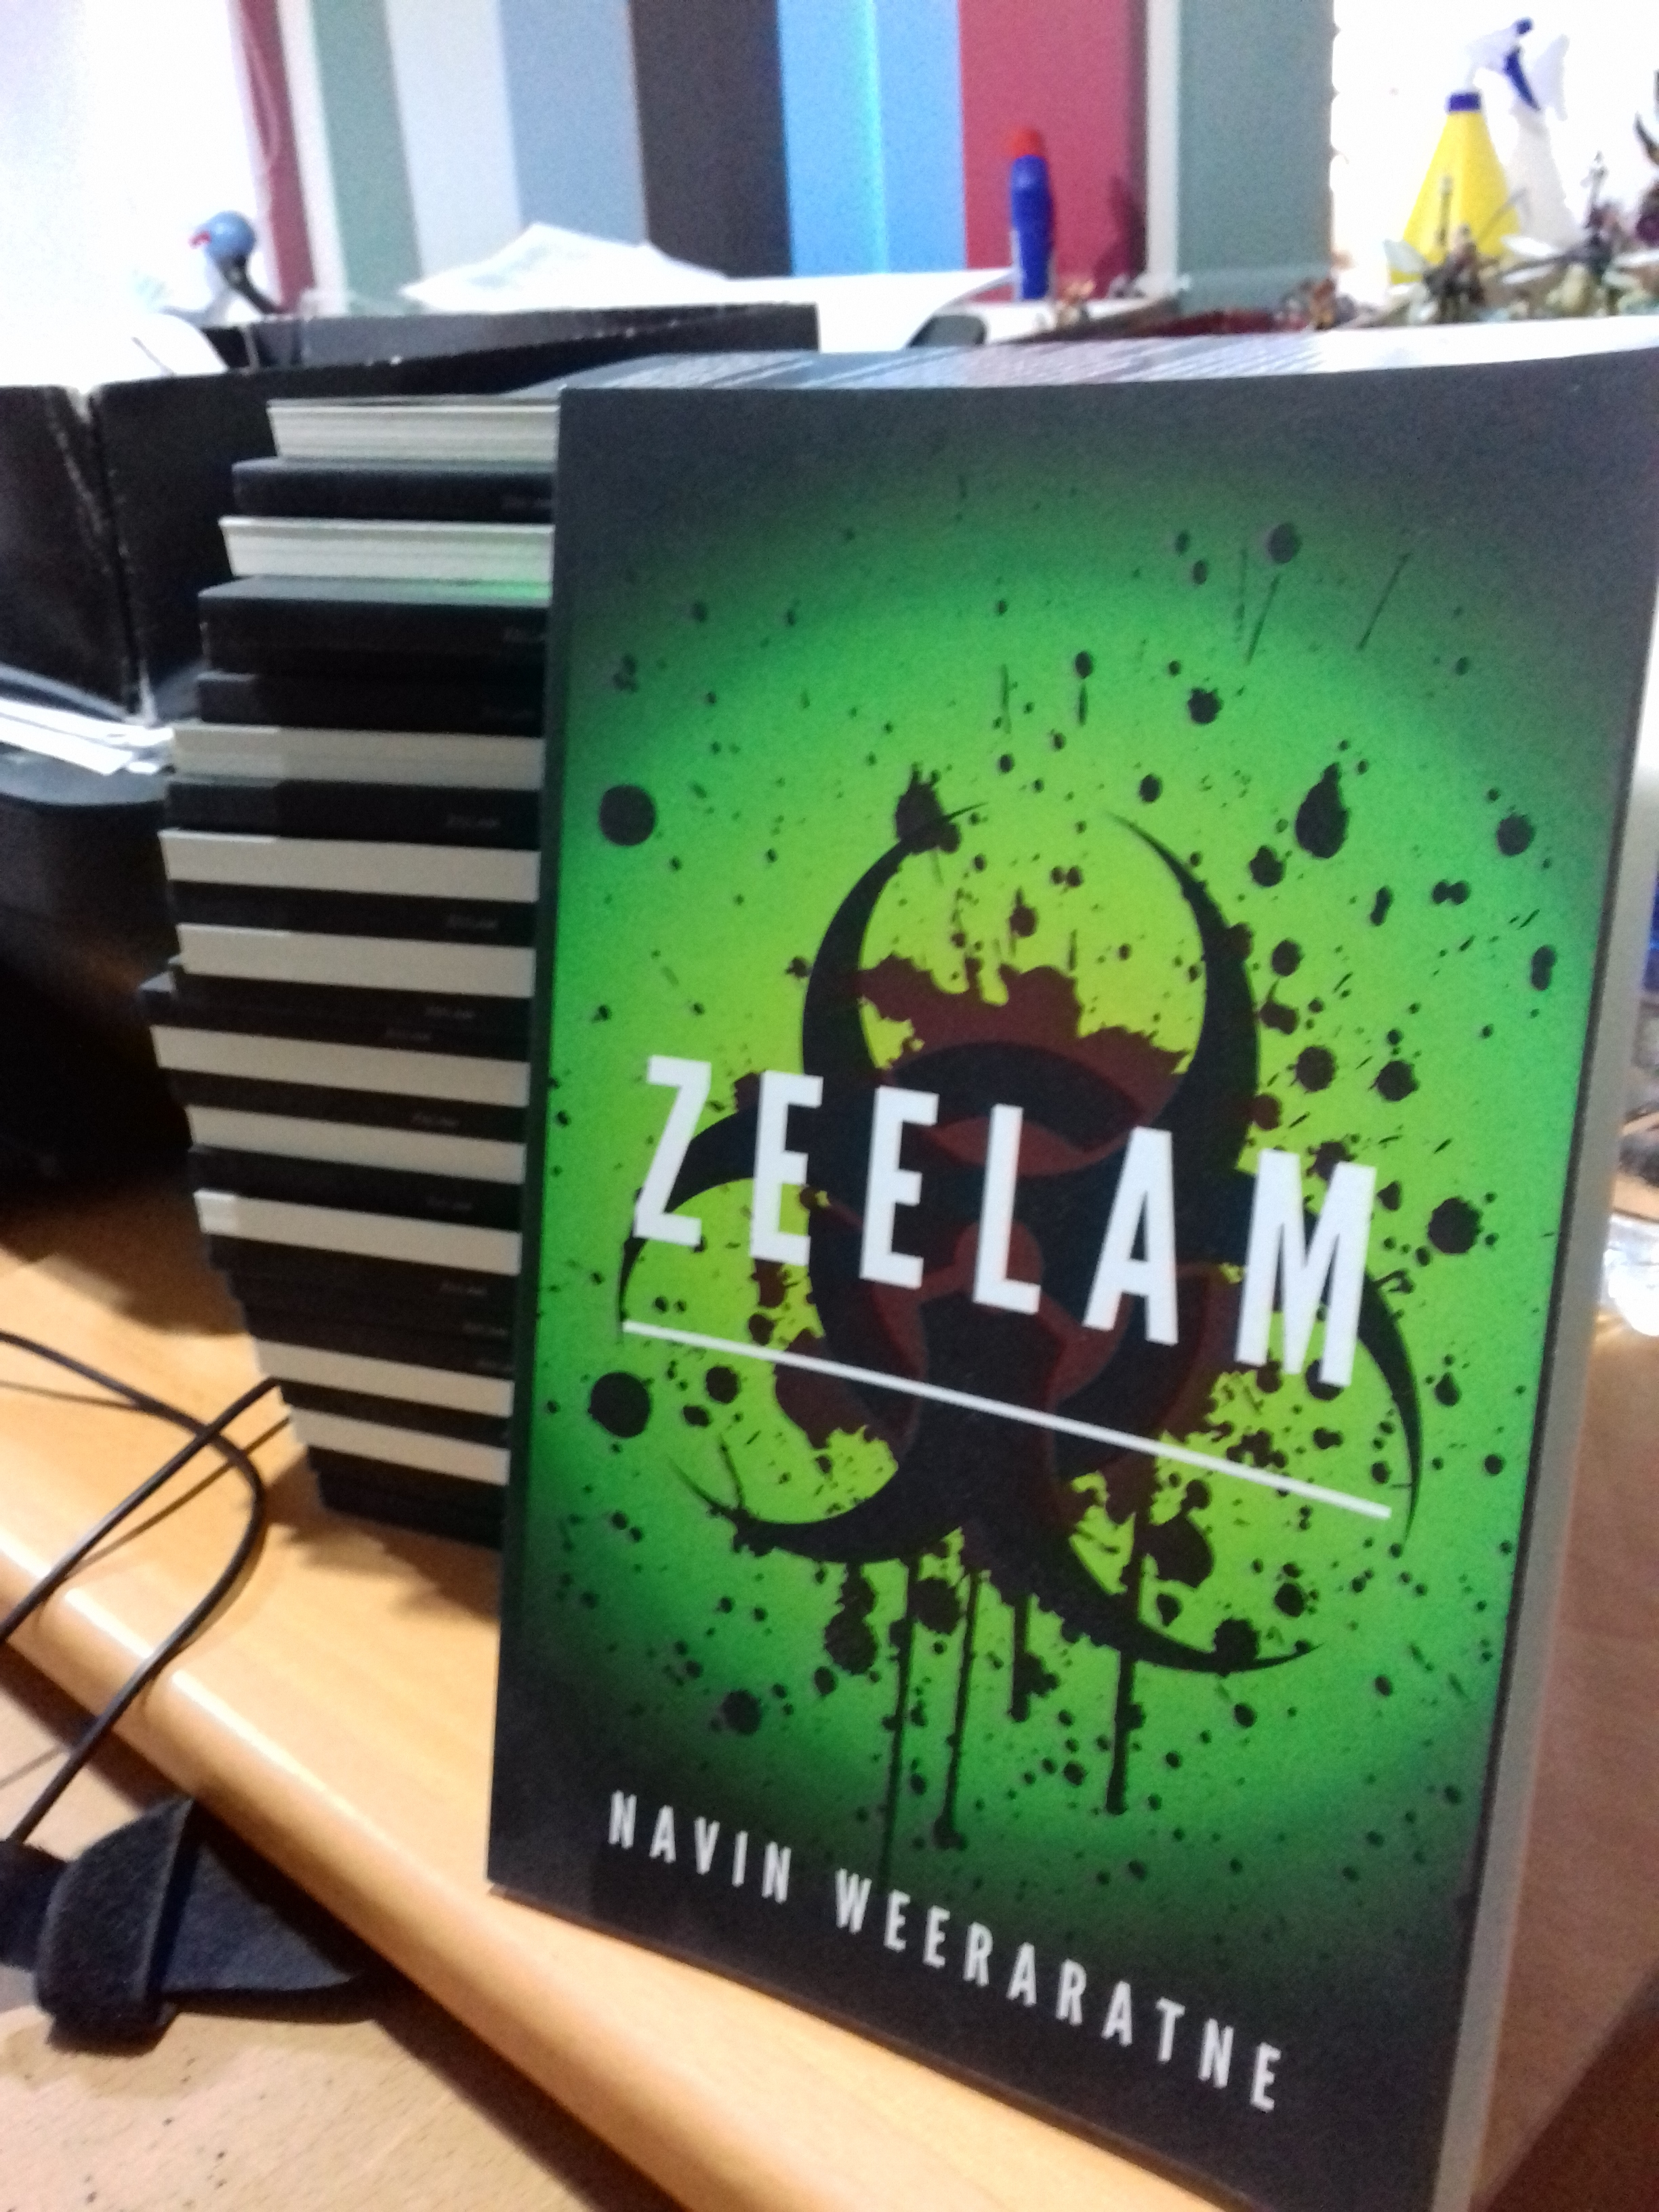 The Fairway shortlisted, Sri lankan zombie novel, 'Zeelam' will be available at the Geek Store in October.